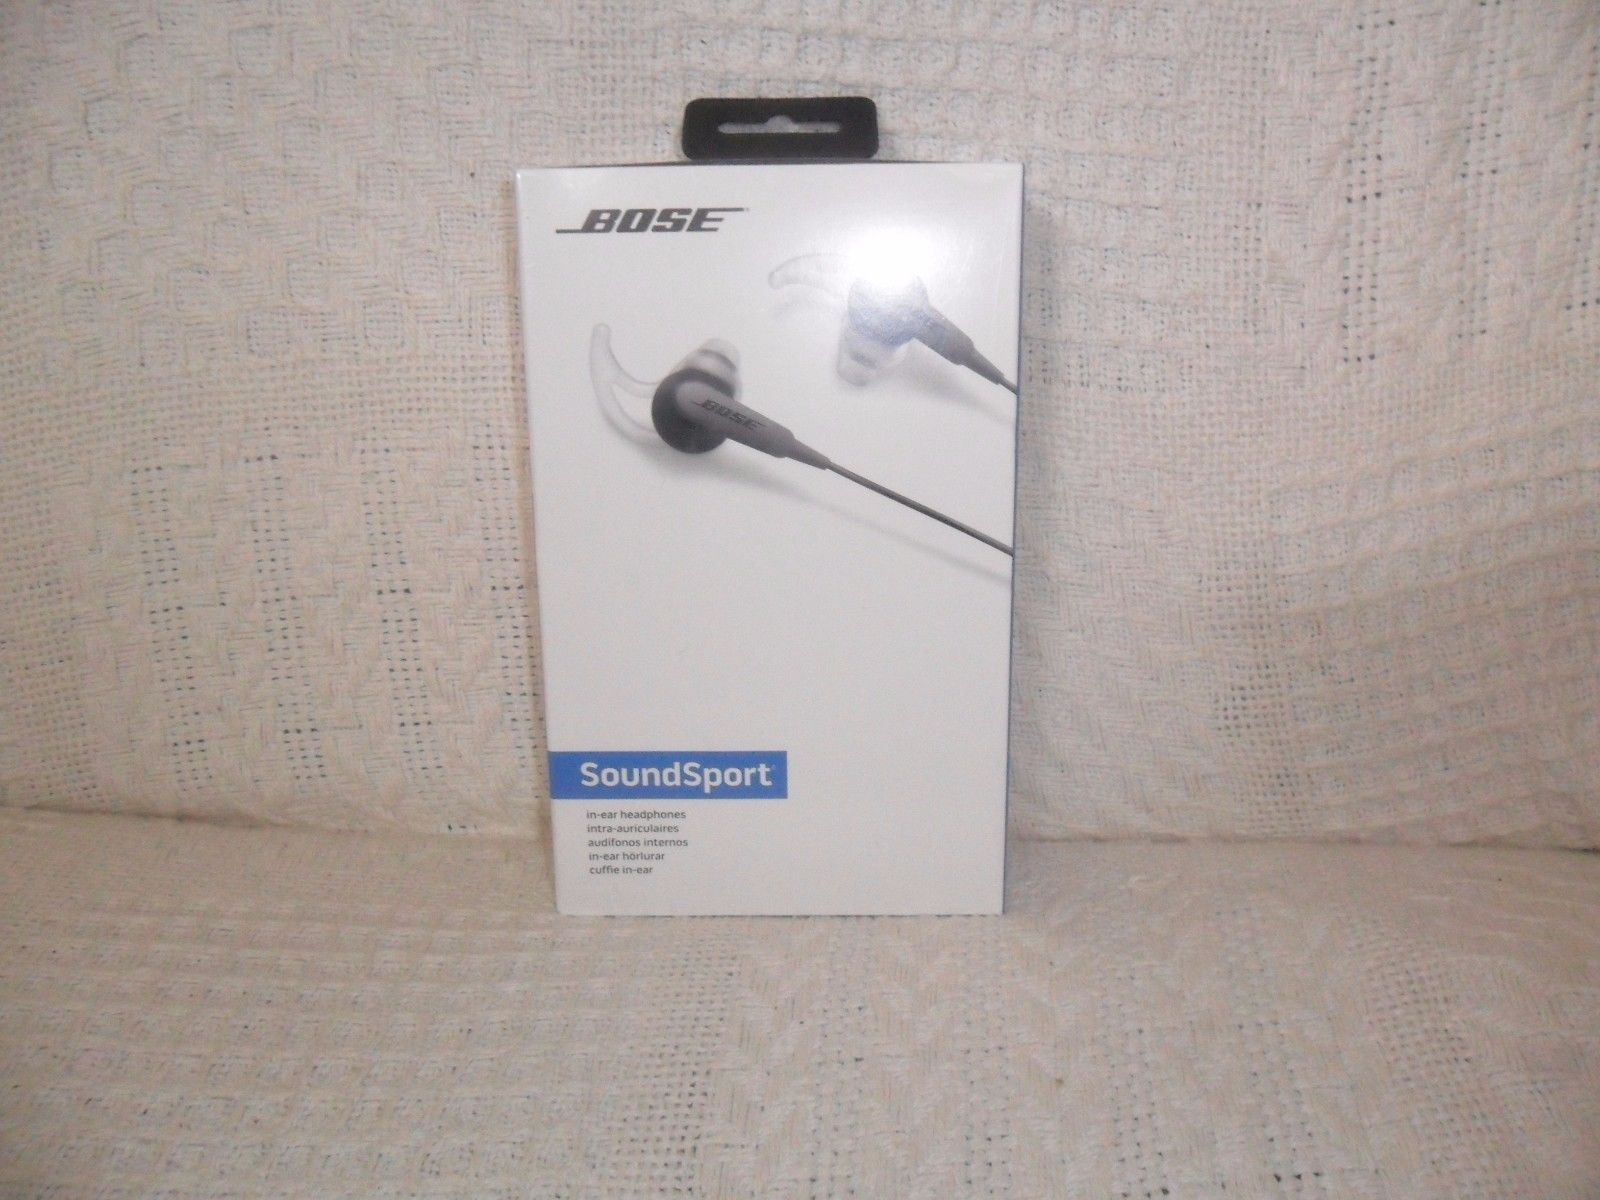 cd22802ed2756e (Bose SoundSport In-Ear Earphones for Samsung and Android Devices -  Charcoal) Can